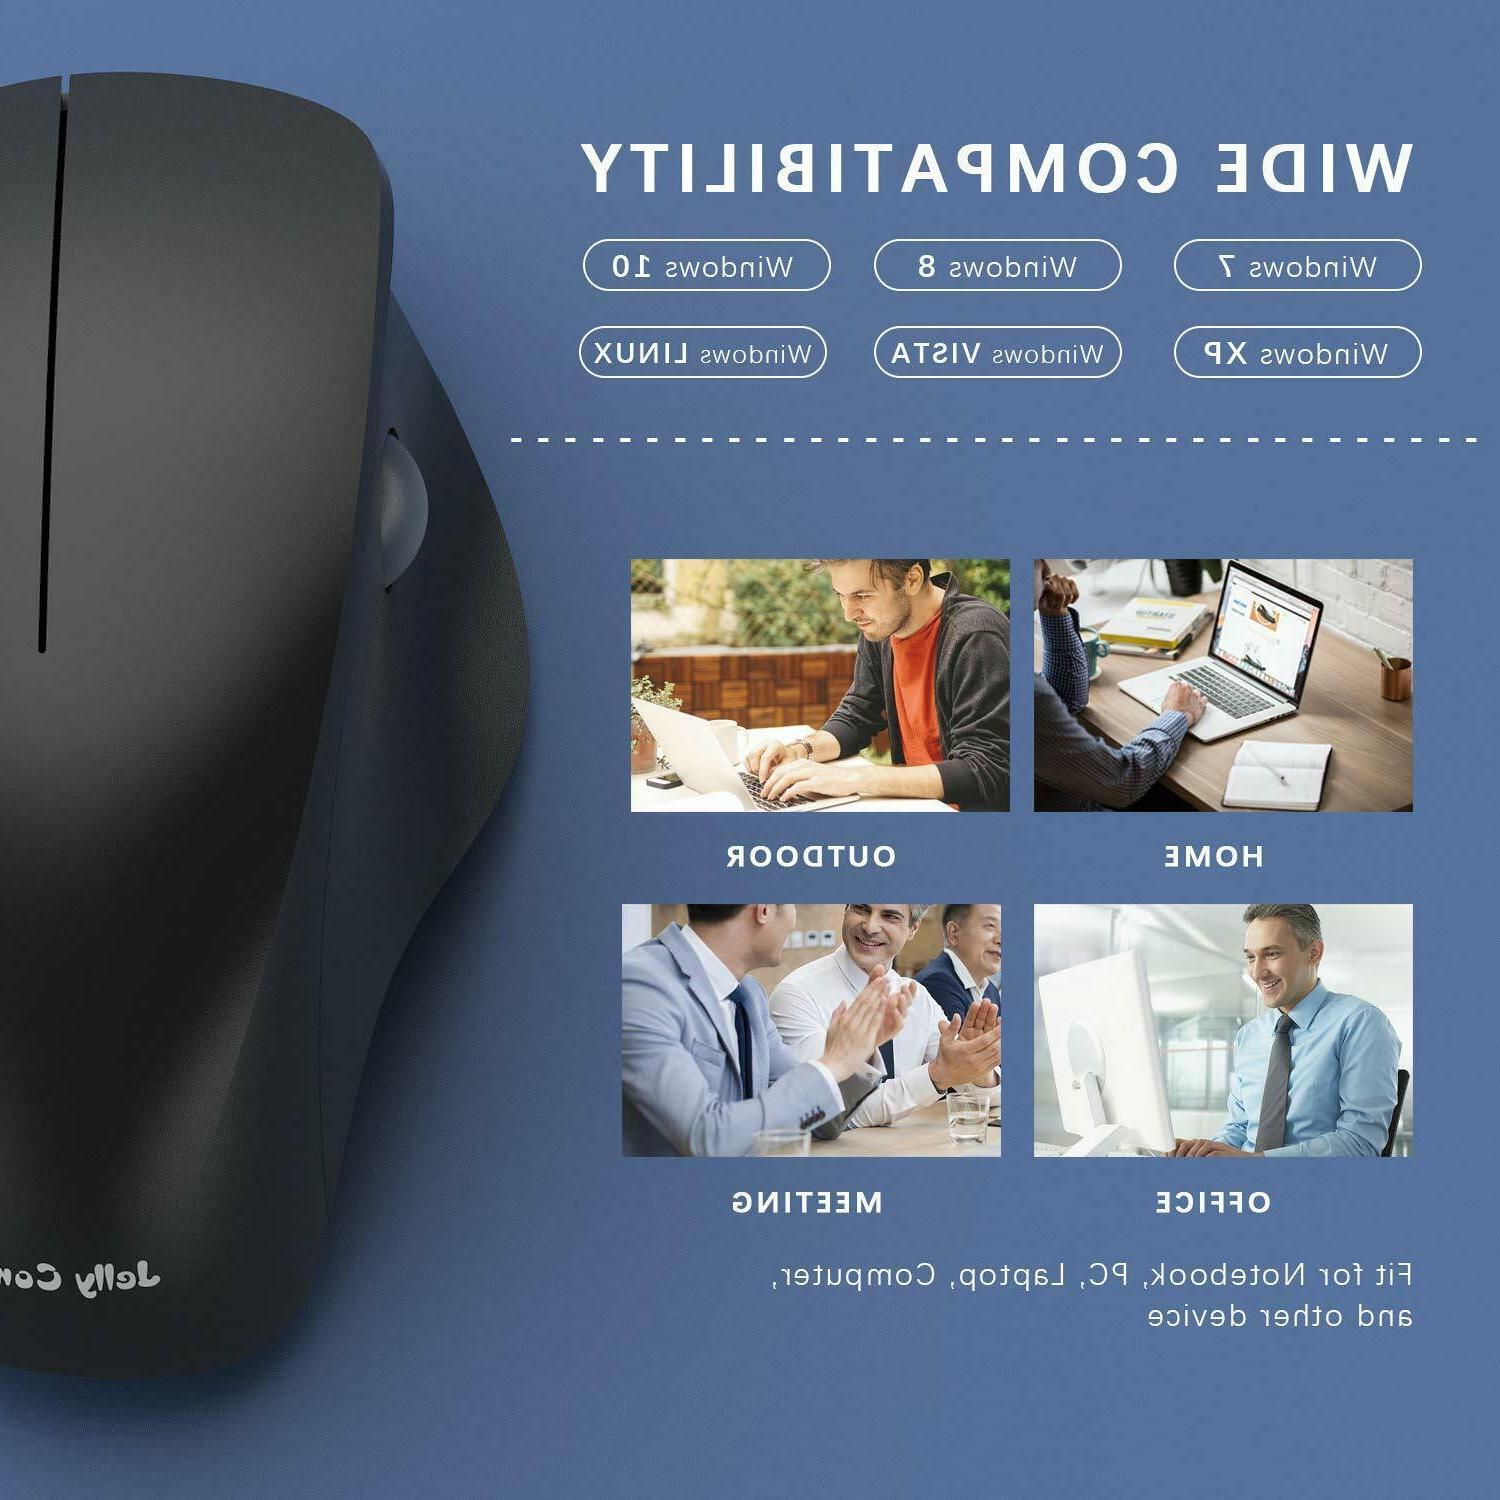 Ergonomic Wireless Mouse for Laptop, 2.4GHz